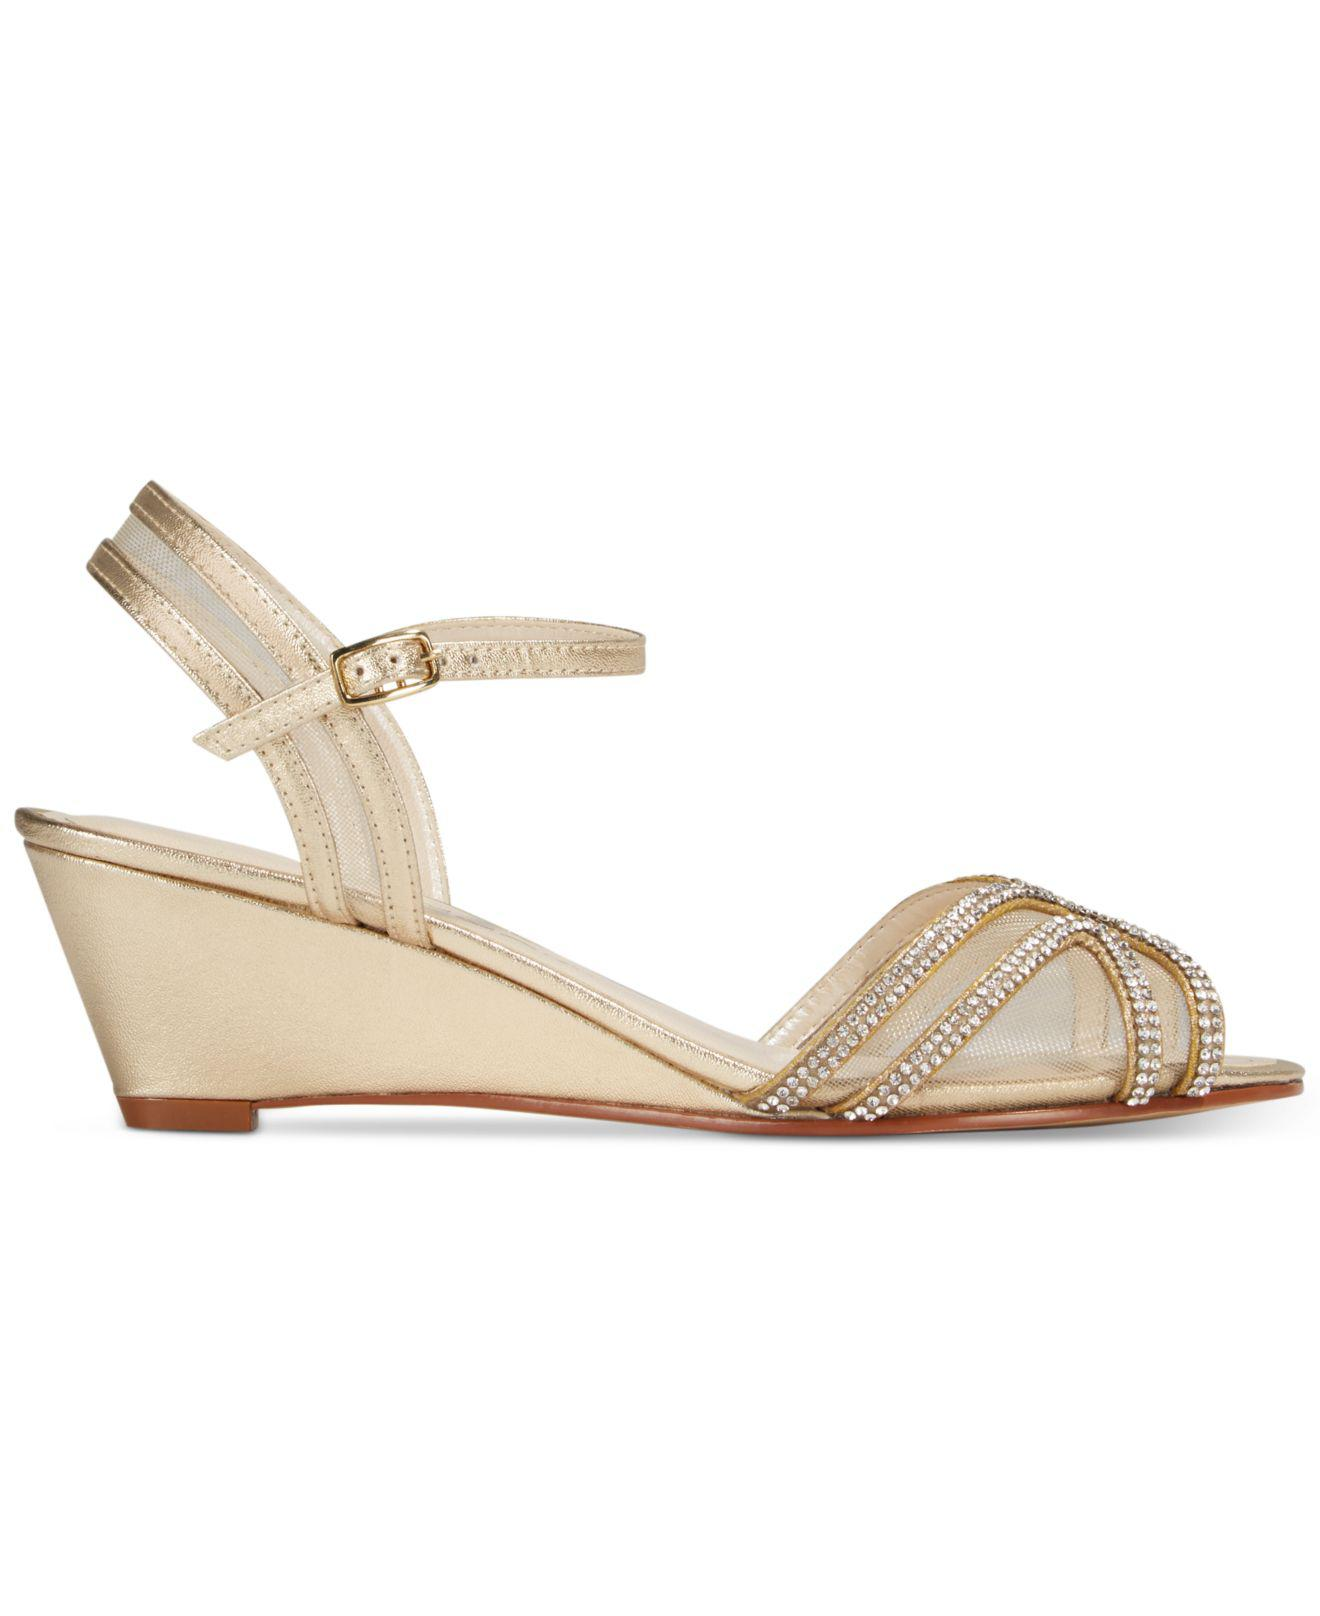 c31f2939d09 Lyst - Caparros Hilton Strappy Evening Wedge Sandals in Metallic